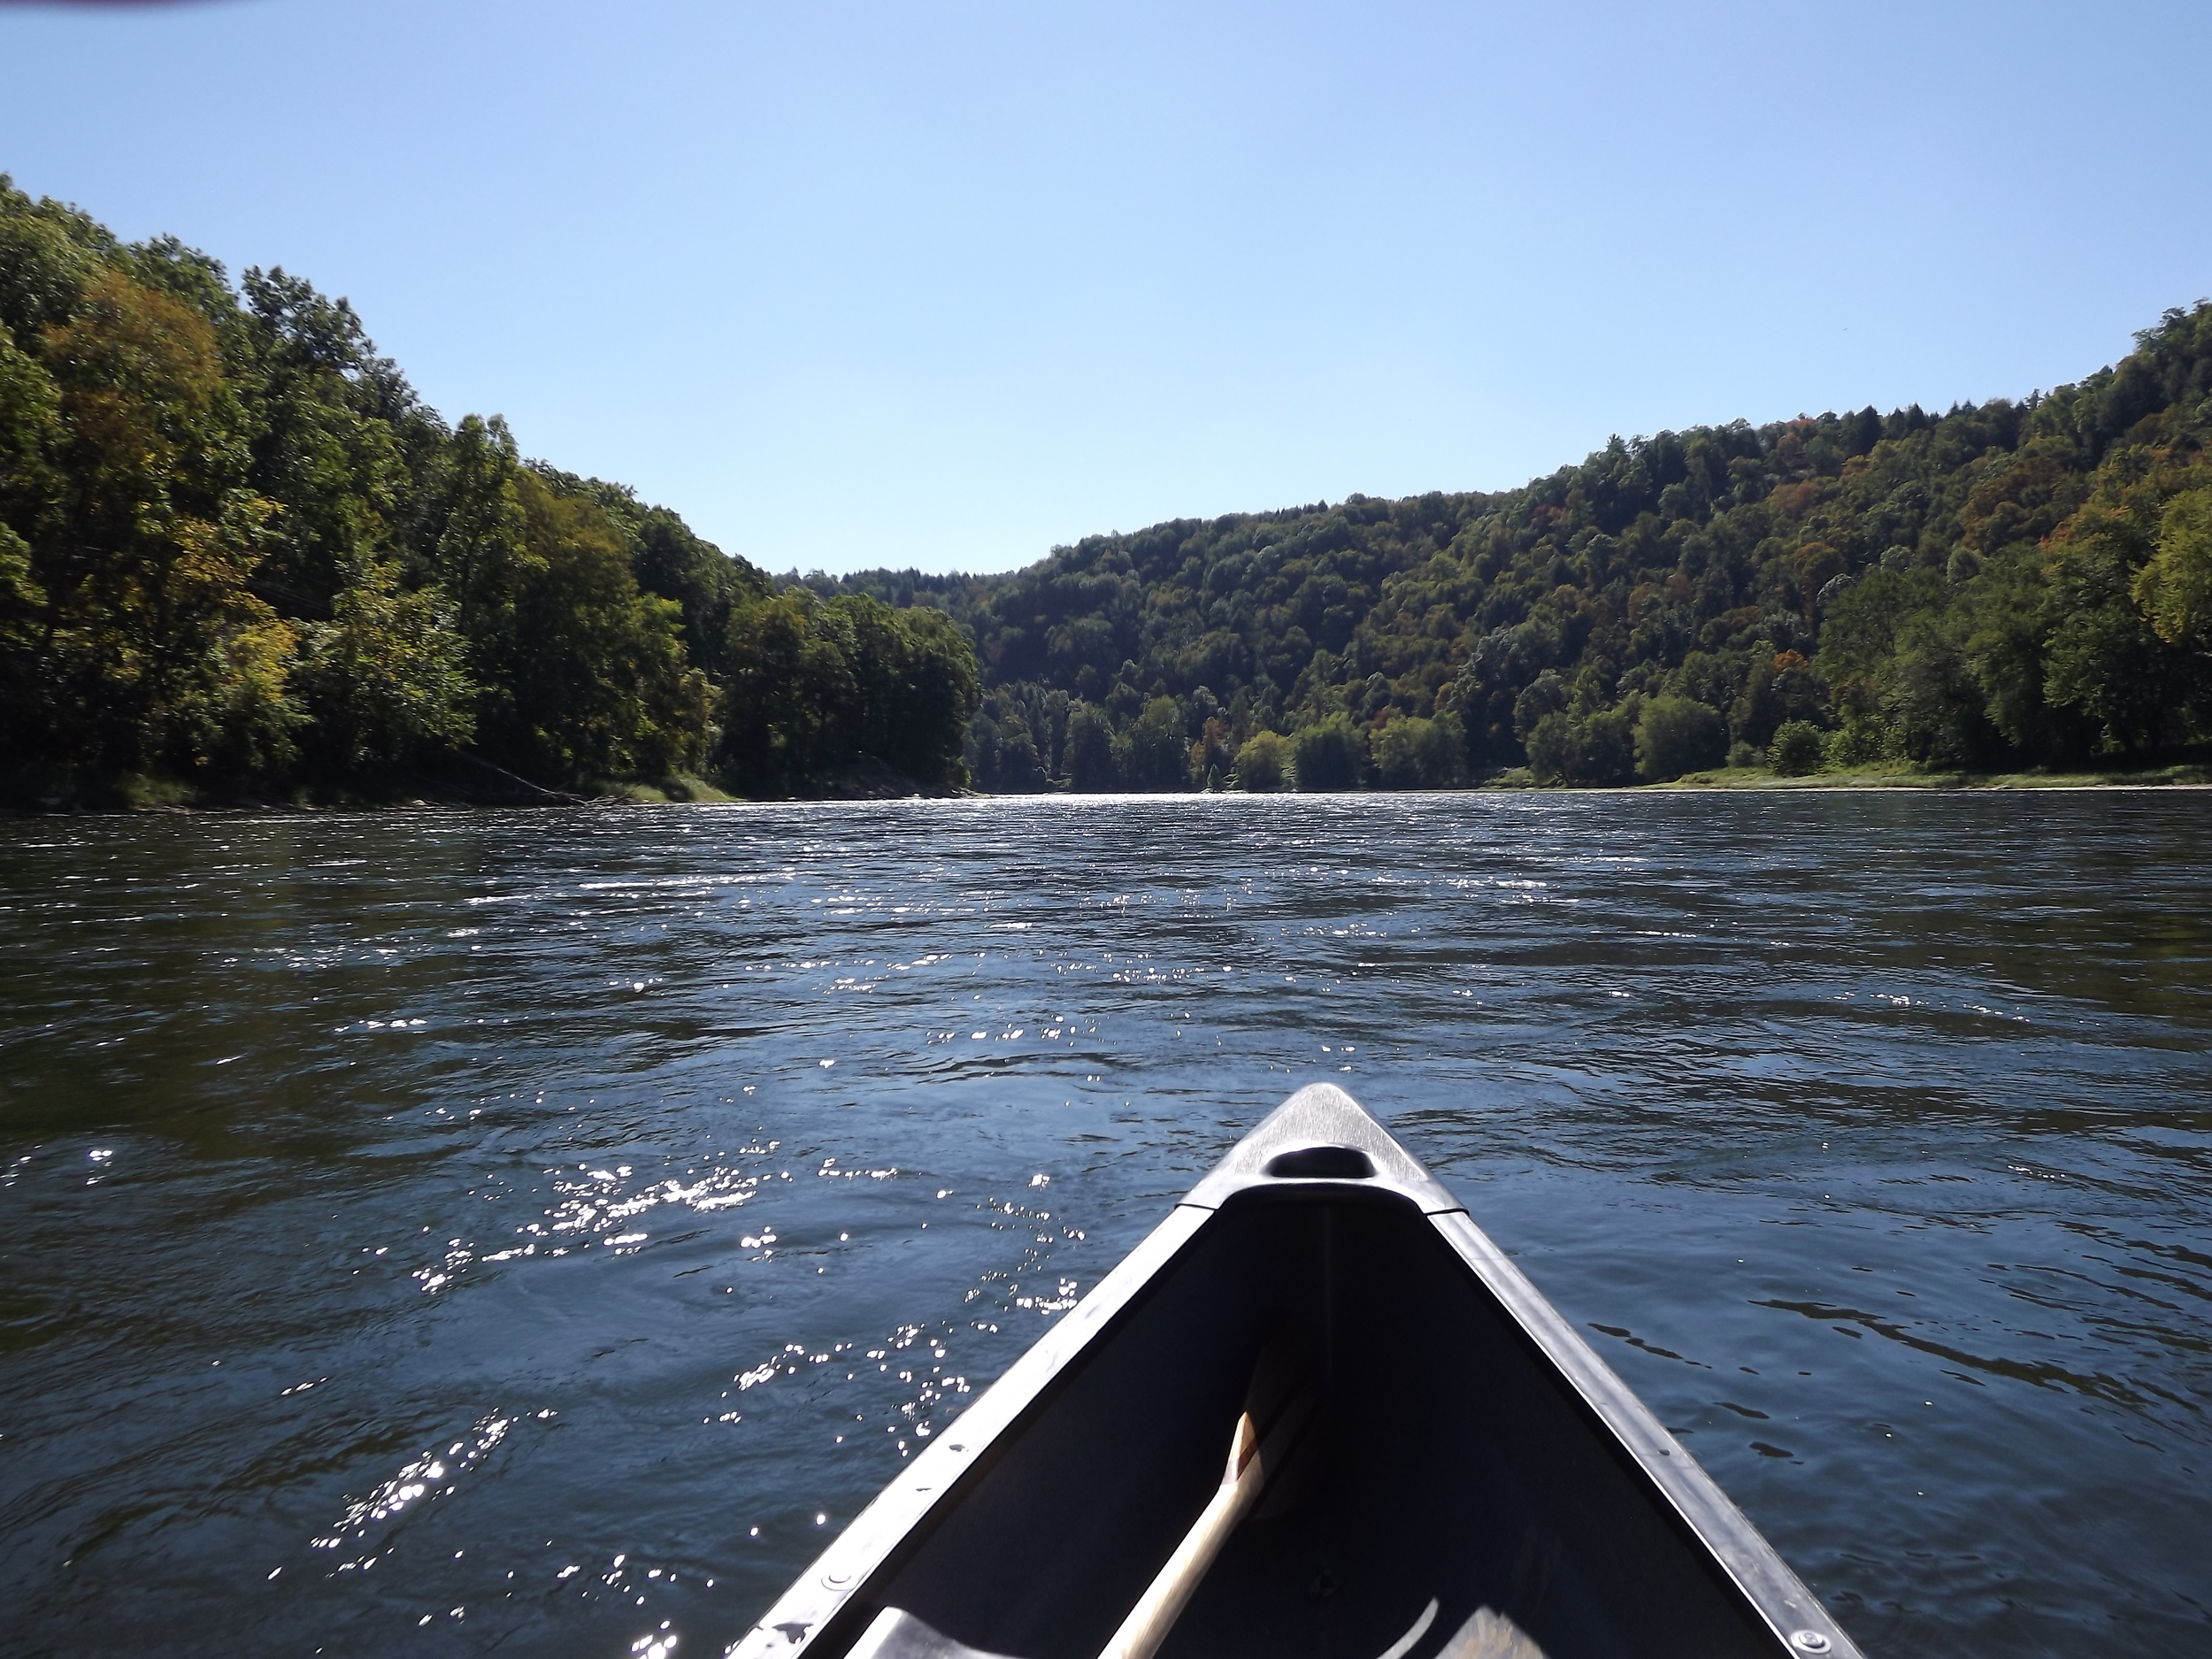 Allegheny River - Swifter section